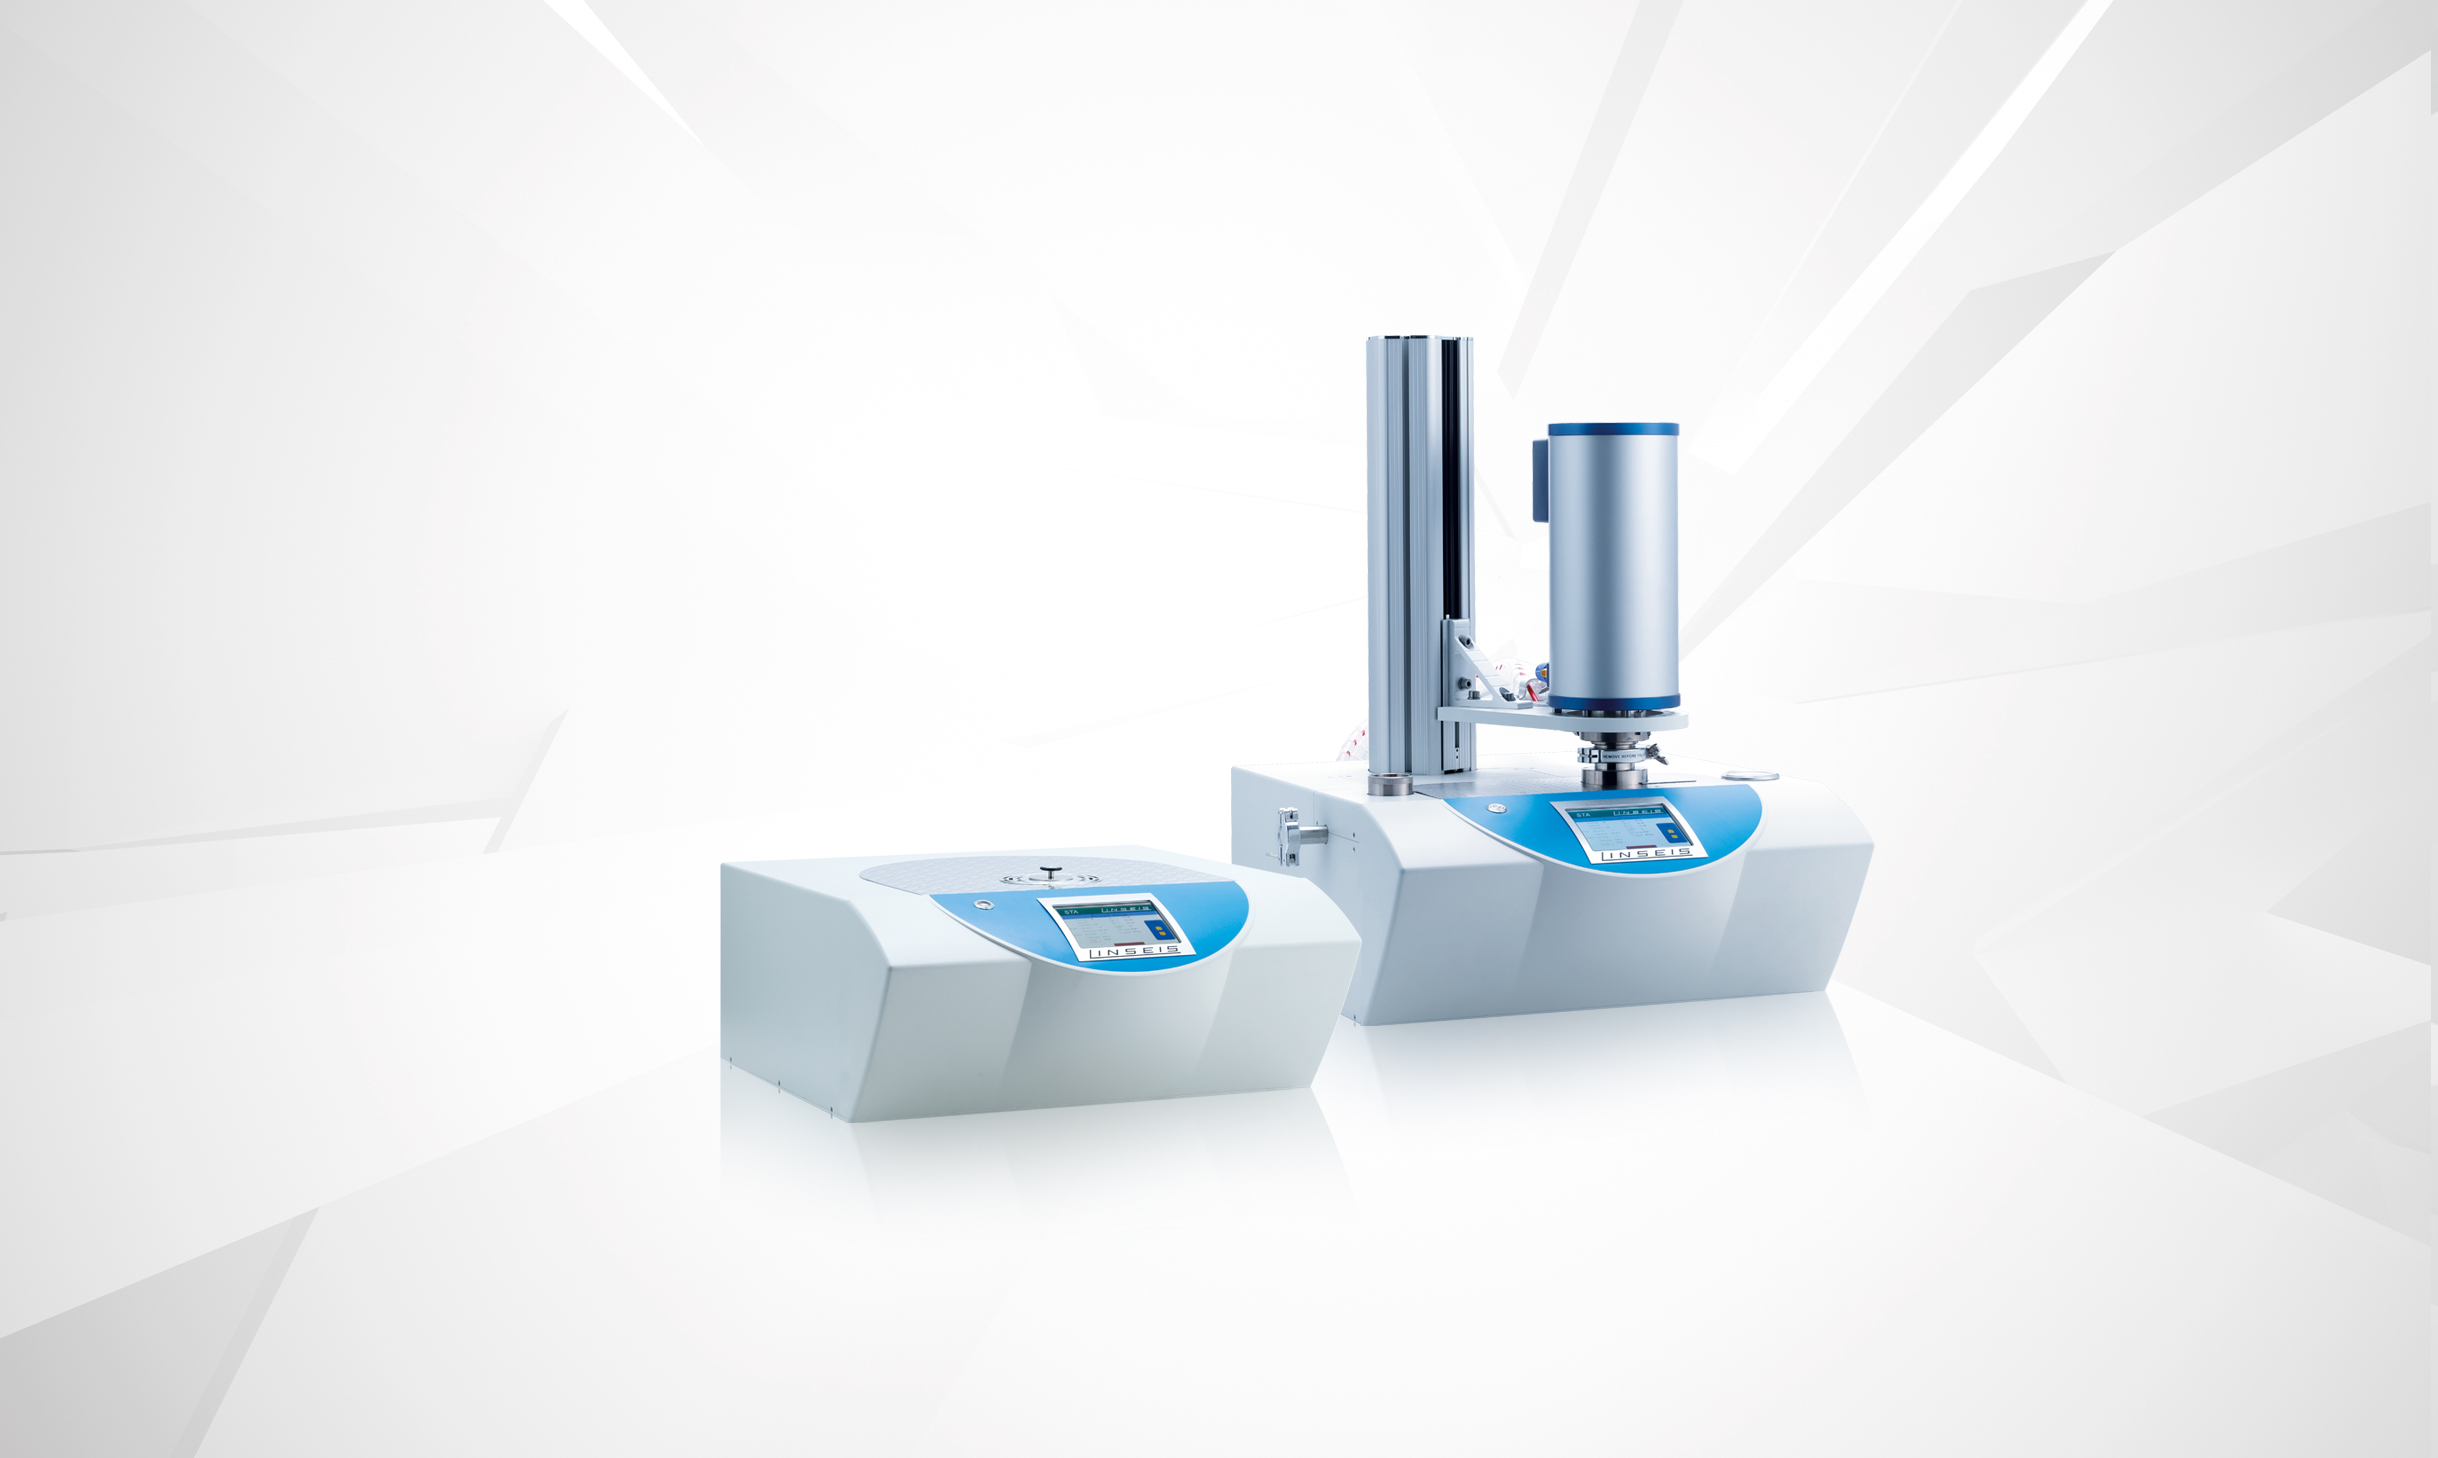 STA - simultaneous-thermogravimetry-differential-scanning-calorimetry